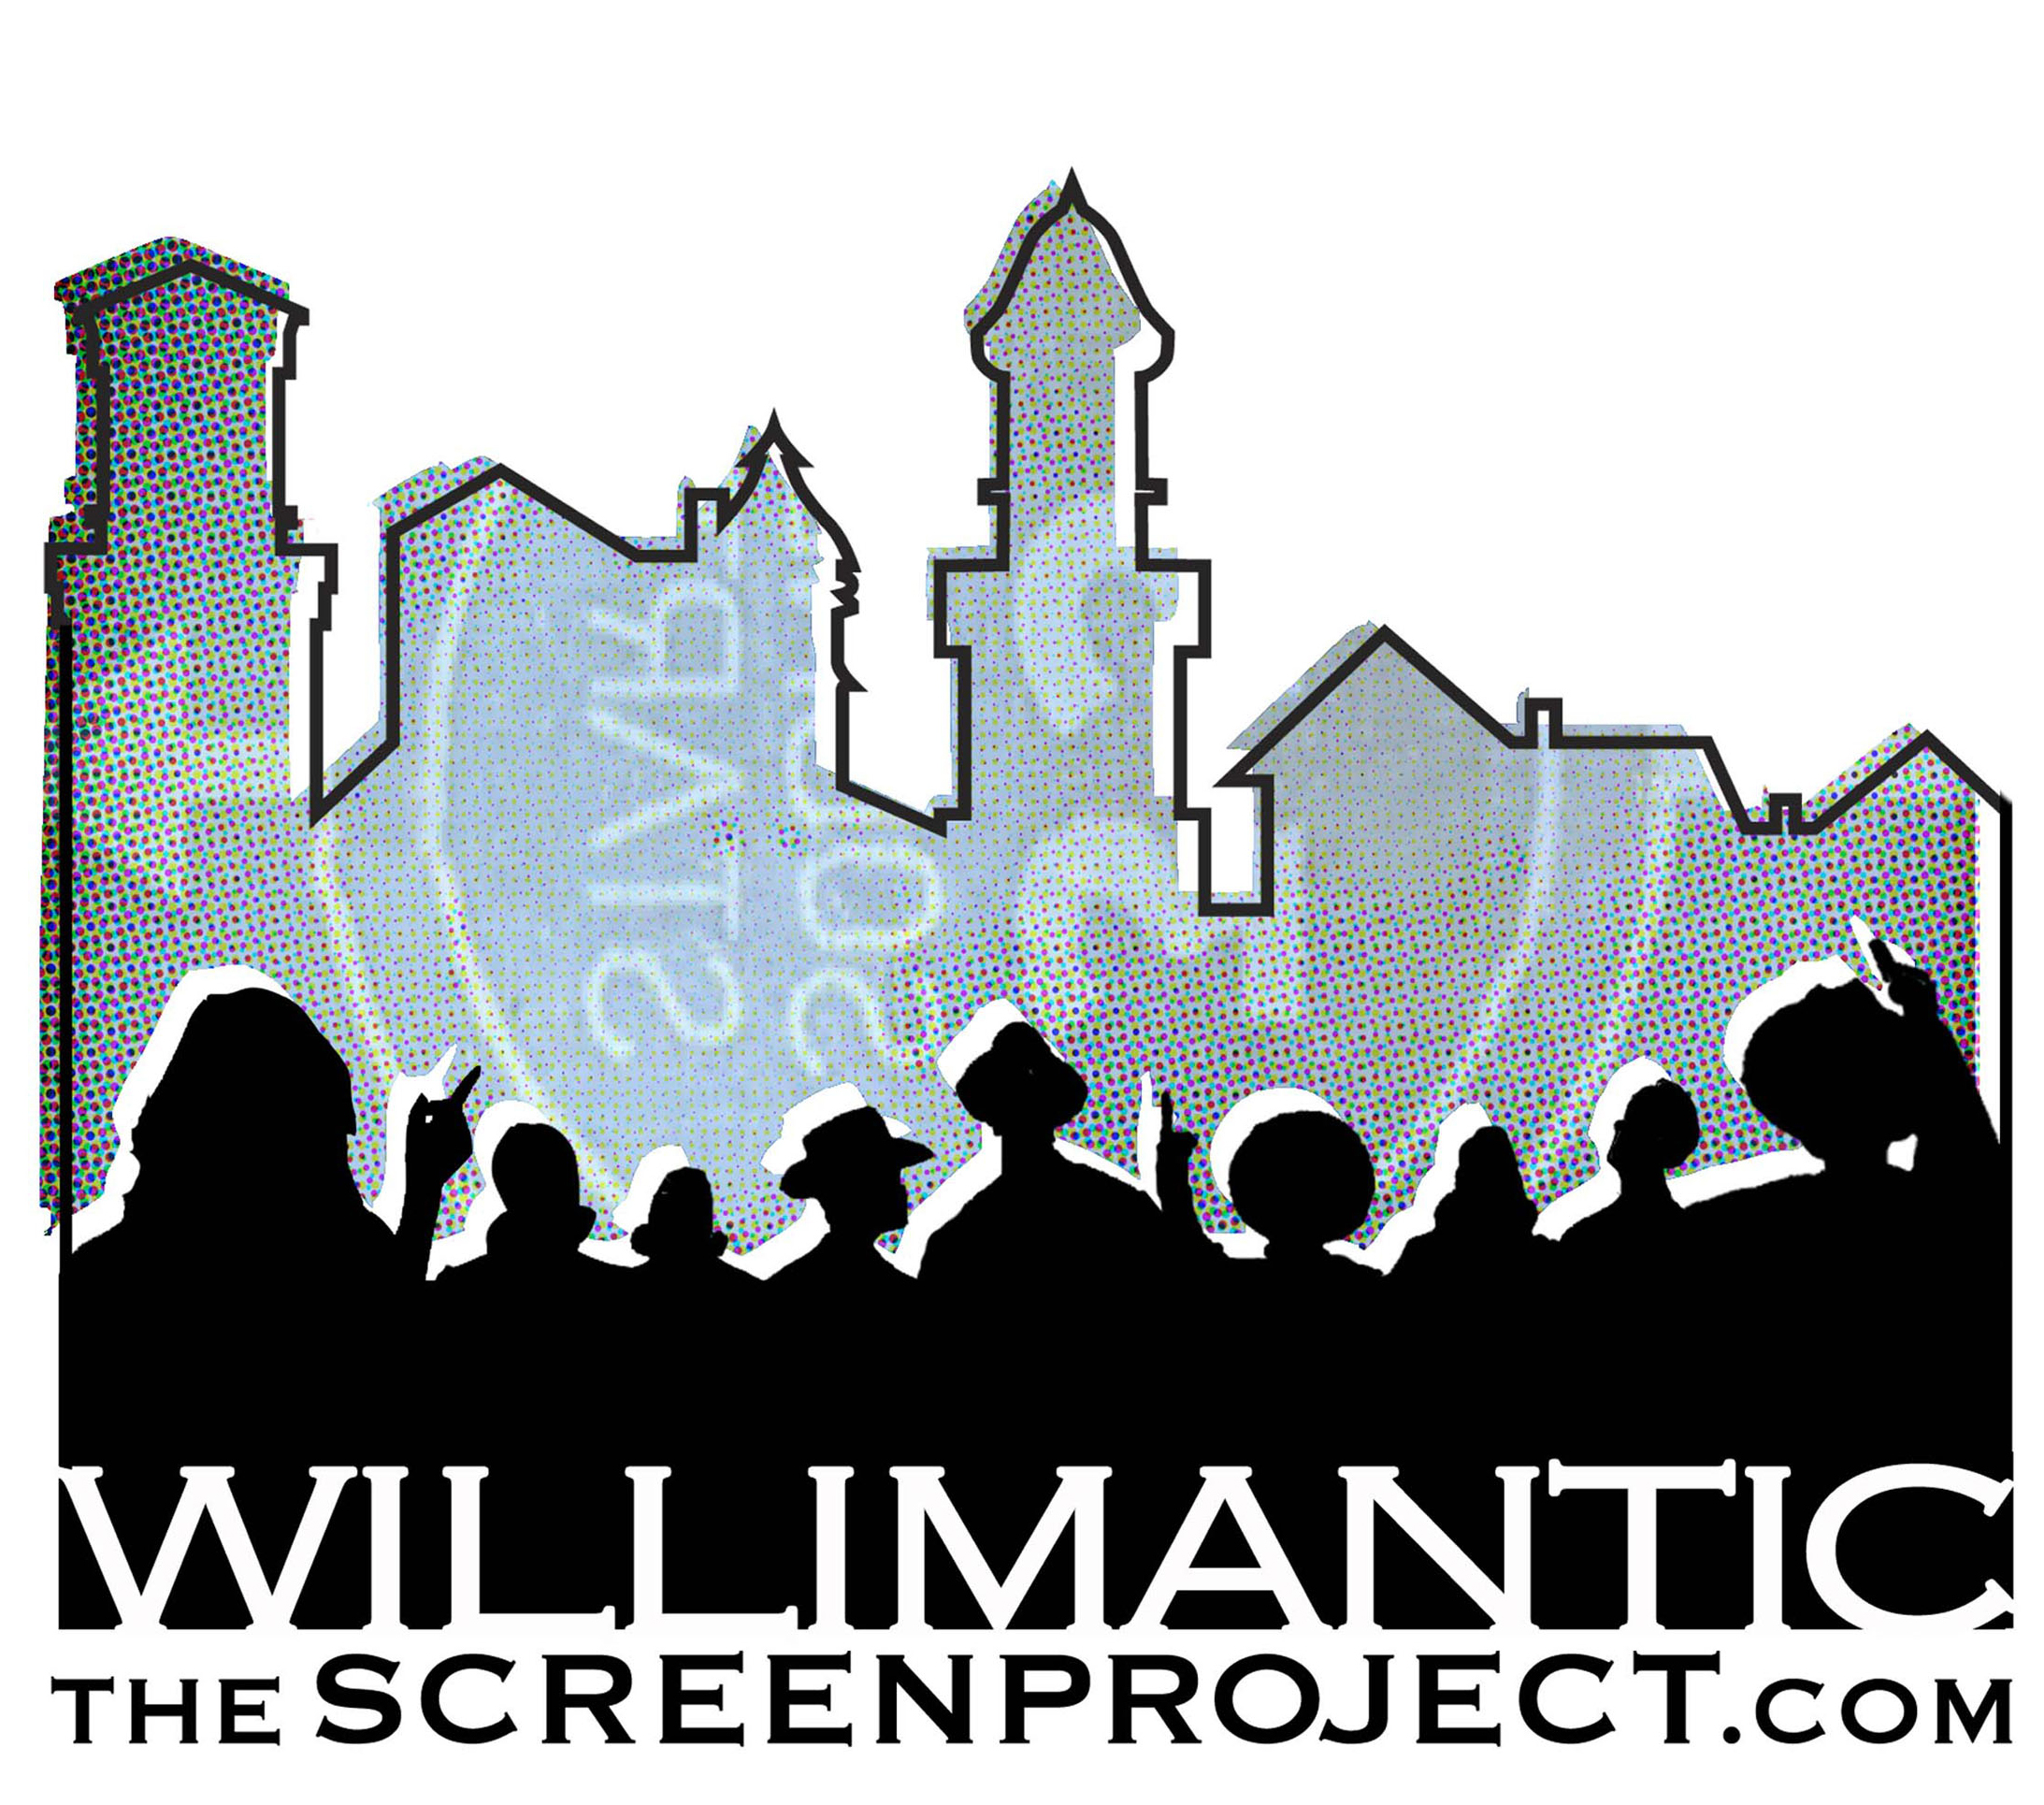 The Willimantic Screen Project